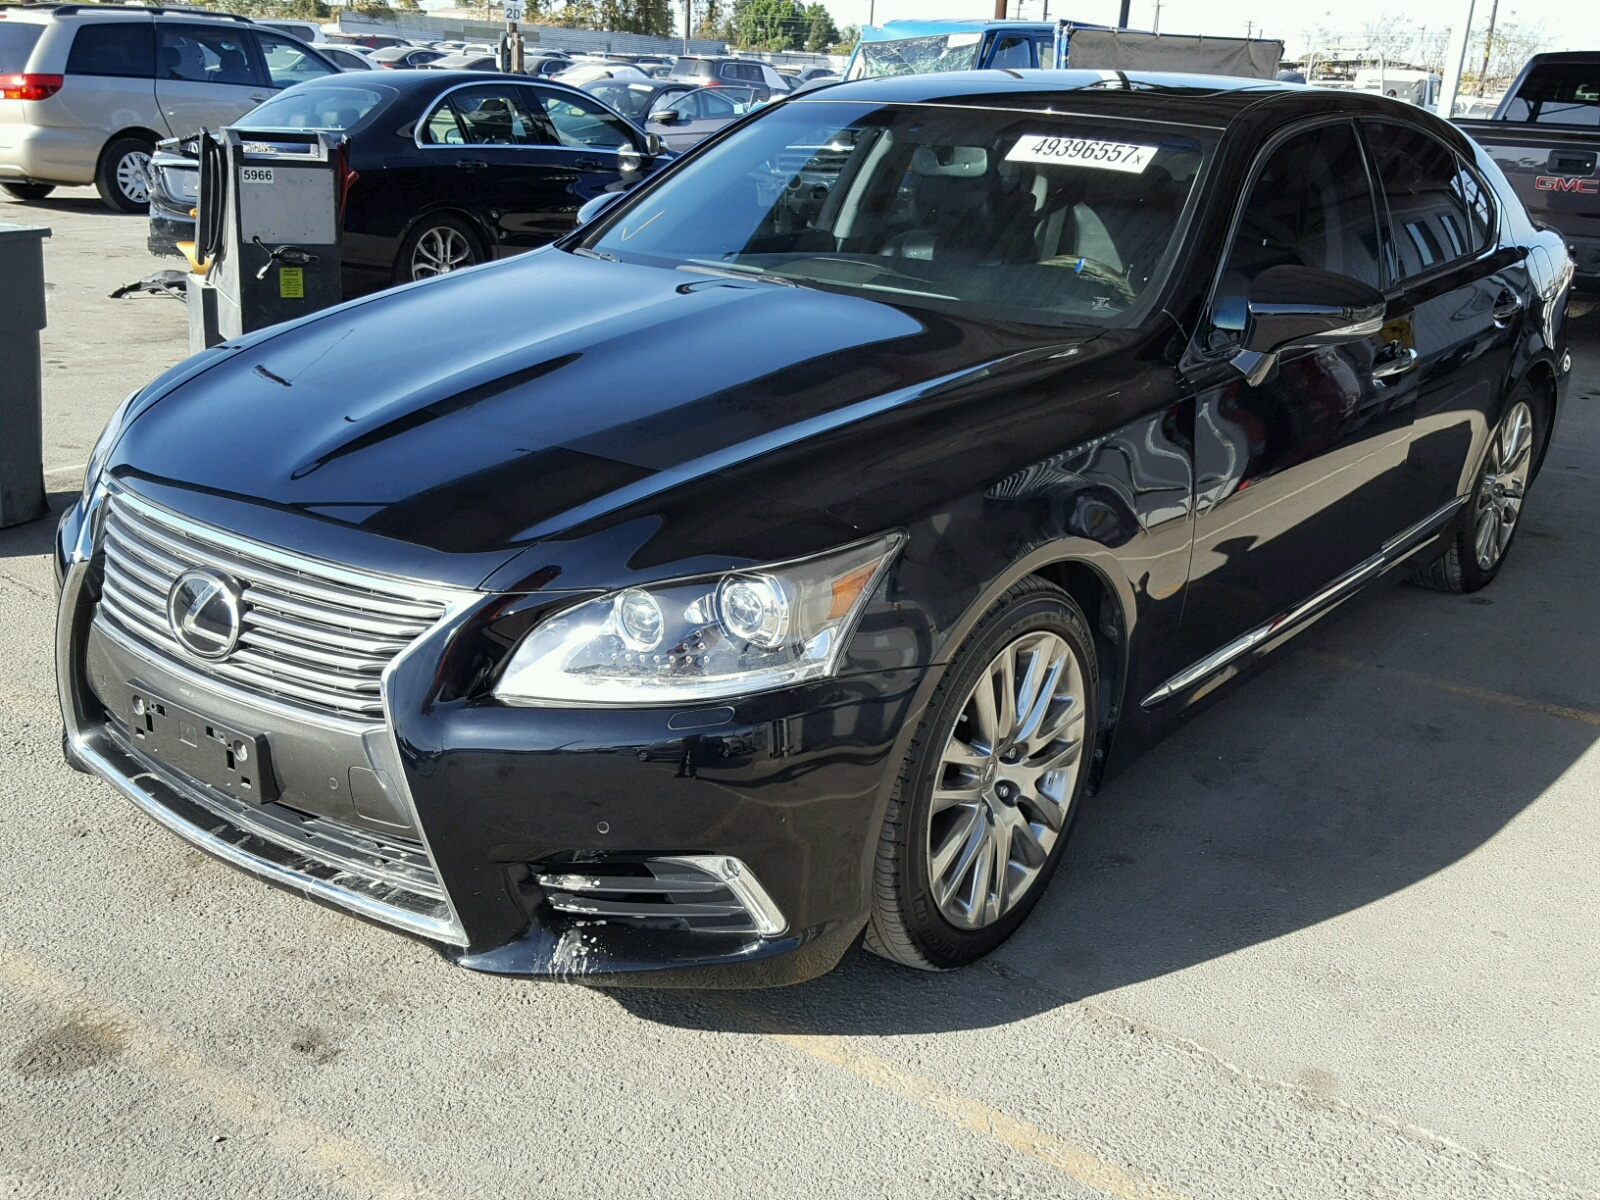 Cars For Sale Los Angeles Ca >> 2014 Lexus LS 460 for sale at Copart Los Angeles, CA Lot# 49396557